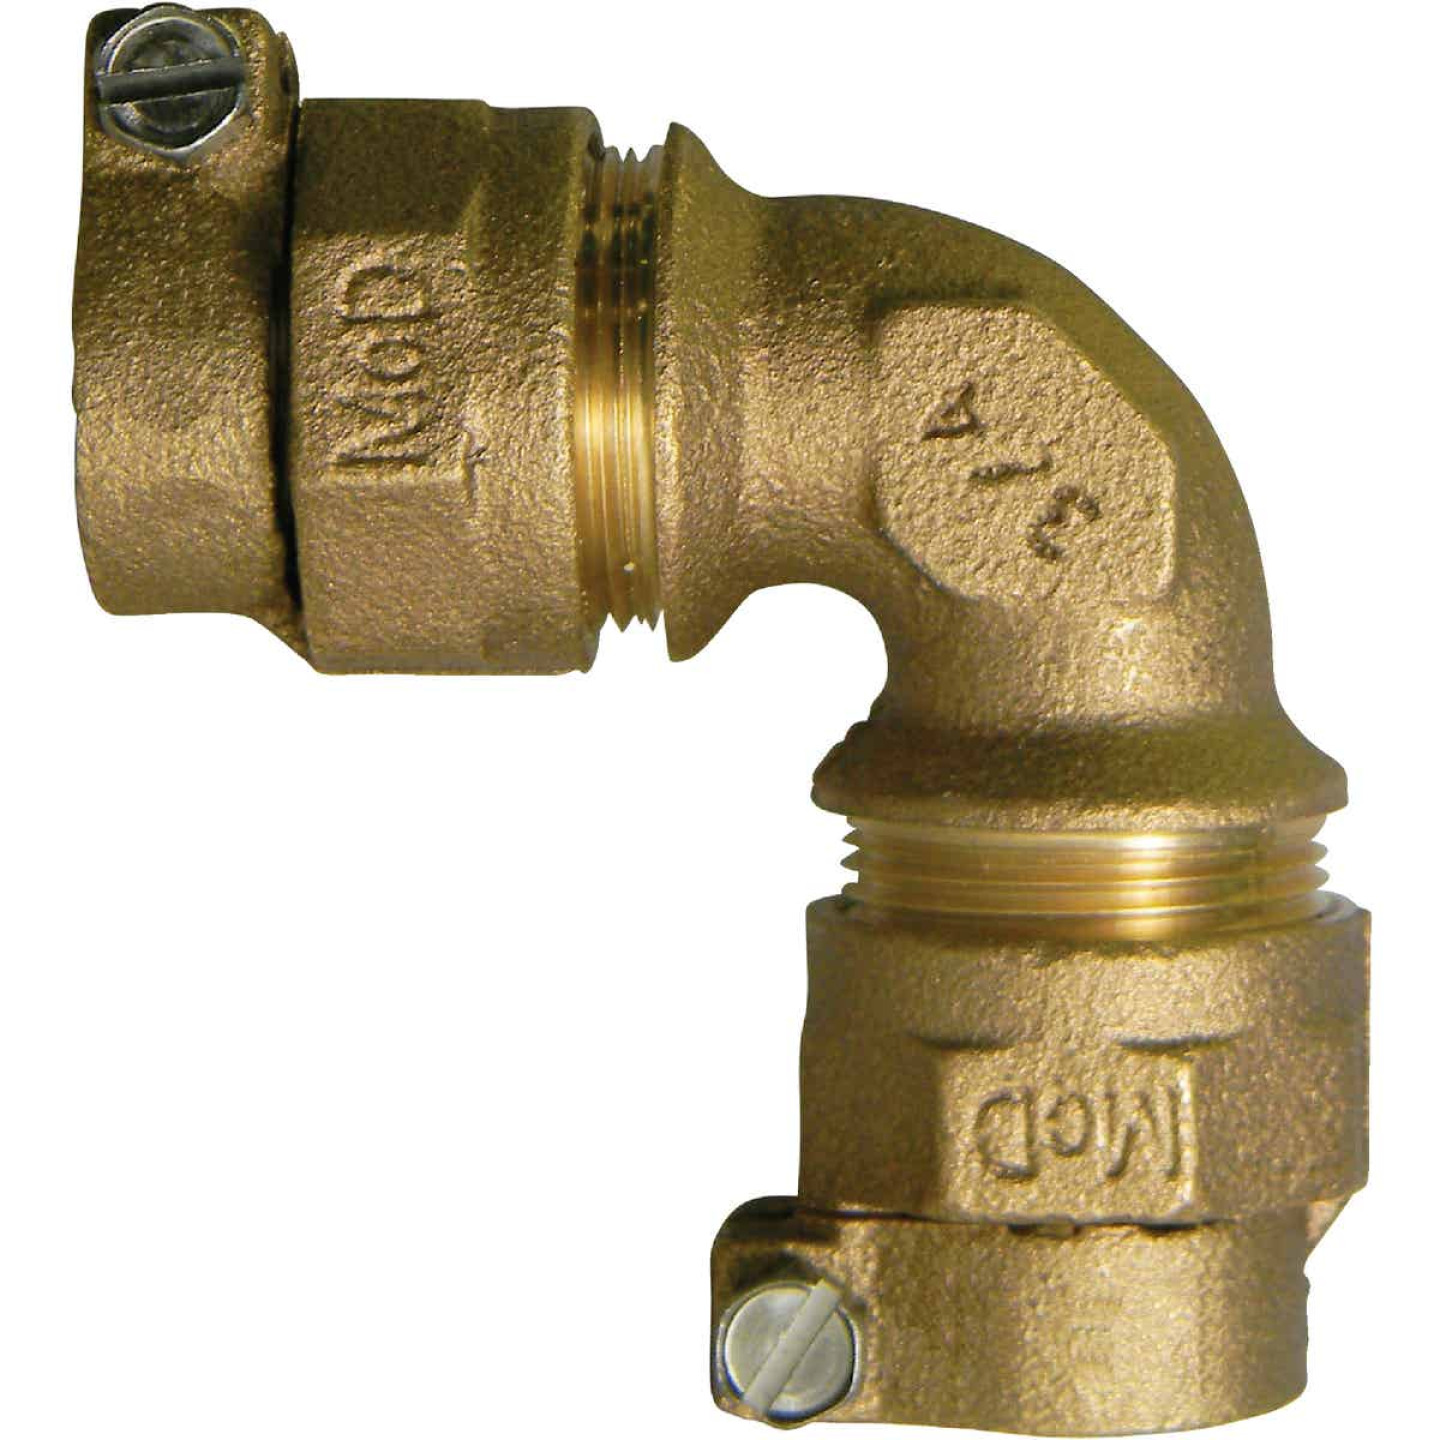 A Y McDonald 1 In. 90 Deg. Brass Elbow, CTS Polyethylene Pipe Connector (1/4 Bend) Image 1